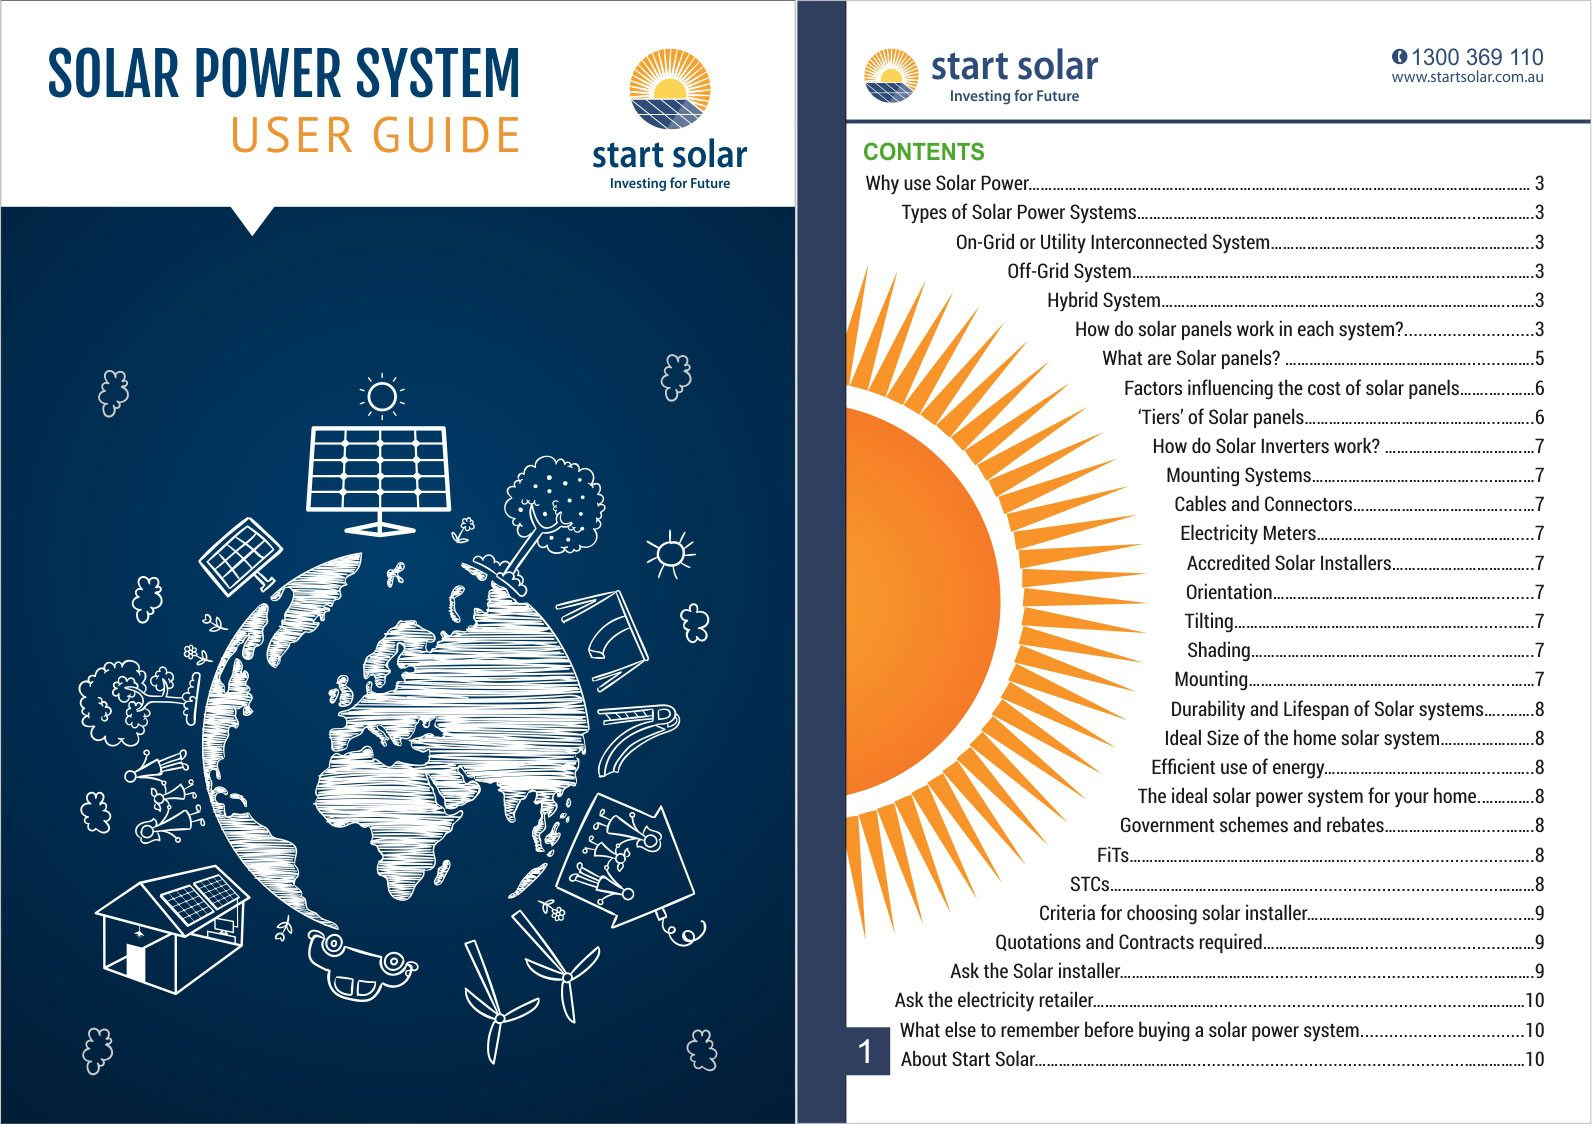 Consumer guide about solar energy start solar please send me the free solar guide sciox Image collections